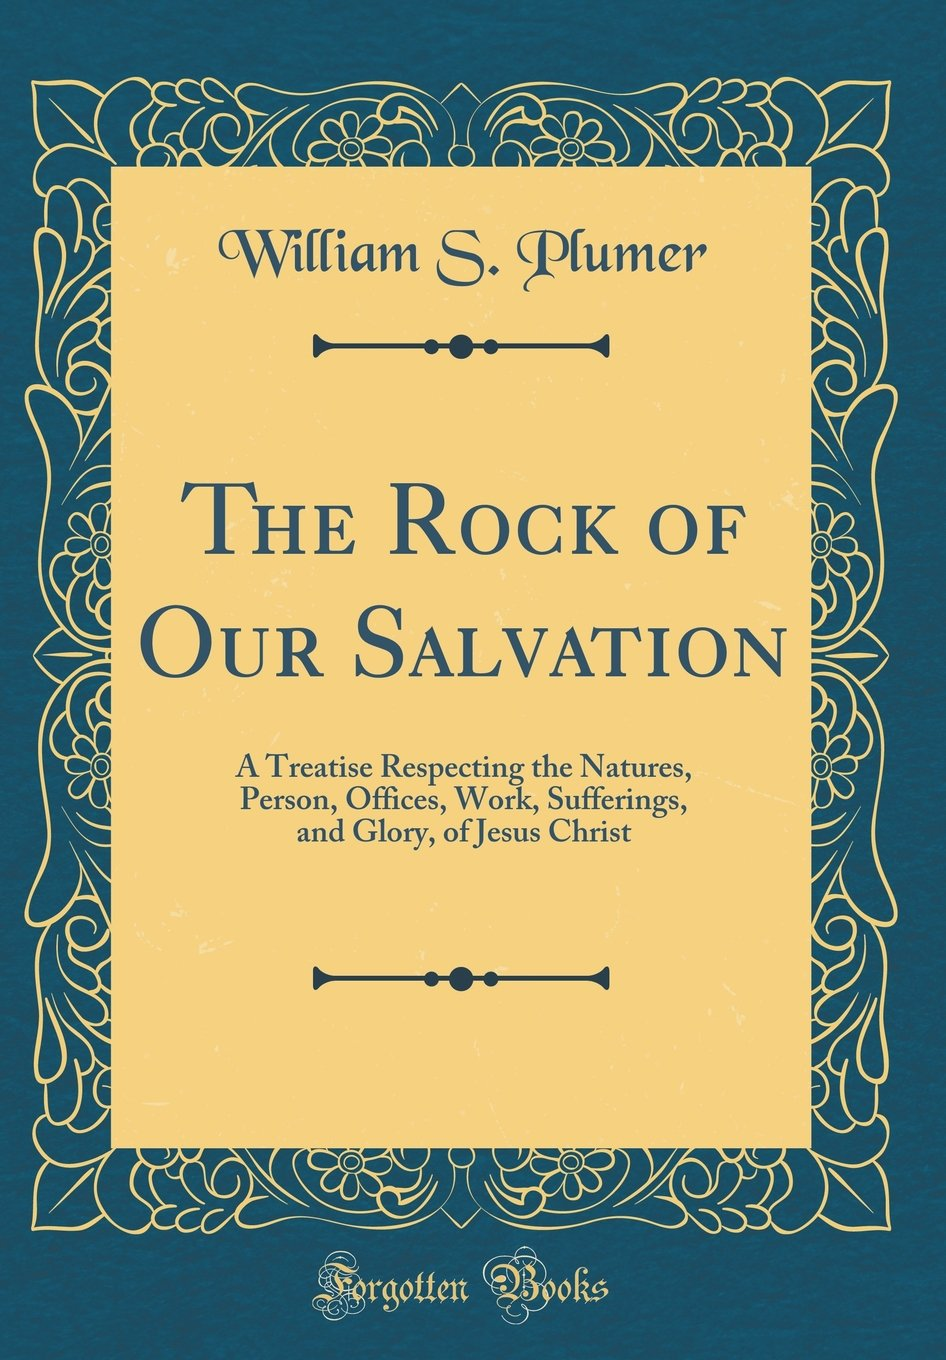 The Rock of Our Salvation: A Treatise Respecting the Natures, Person, Offices, Work, Sufferings, and Glory, of Jesus Christ (Classic Reprint) pdf epub